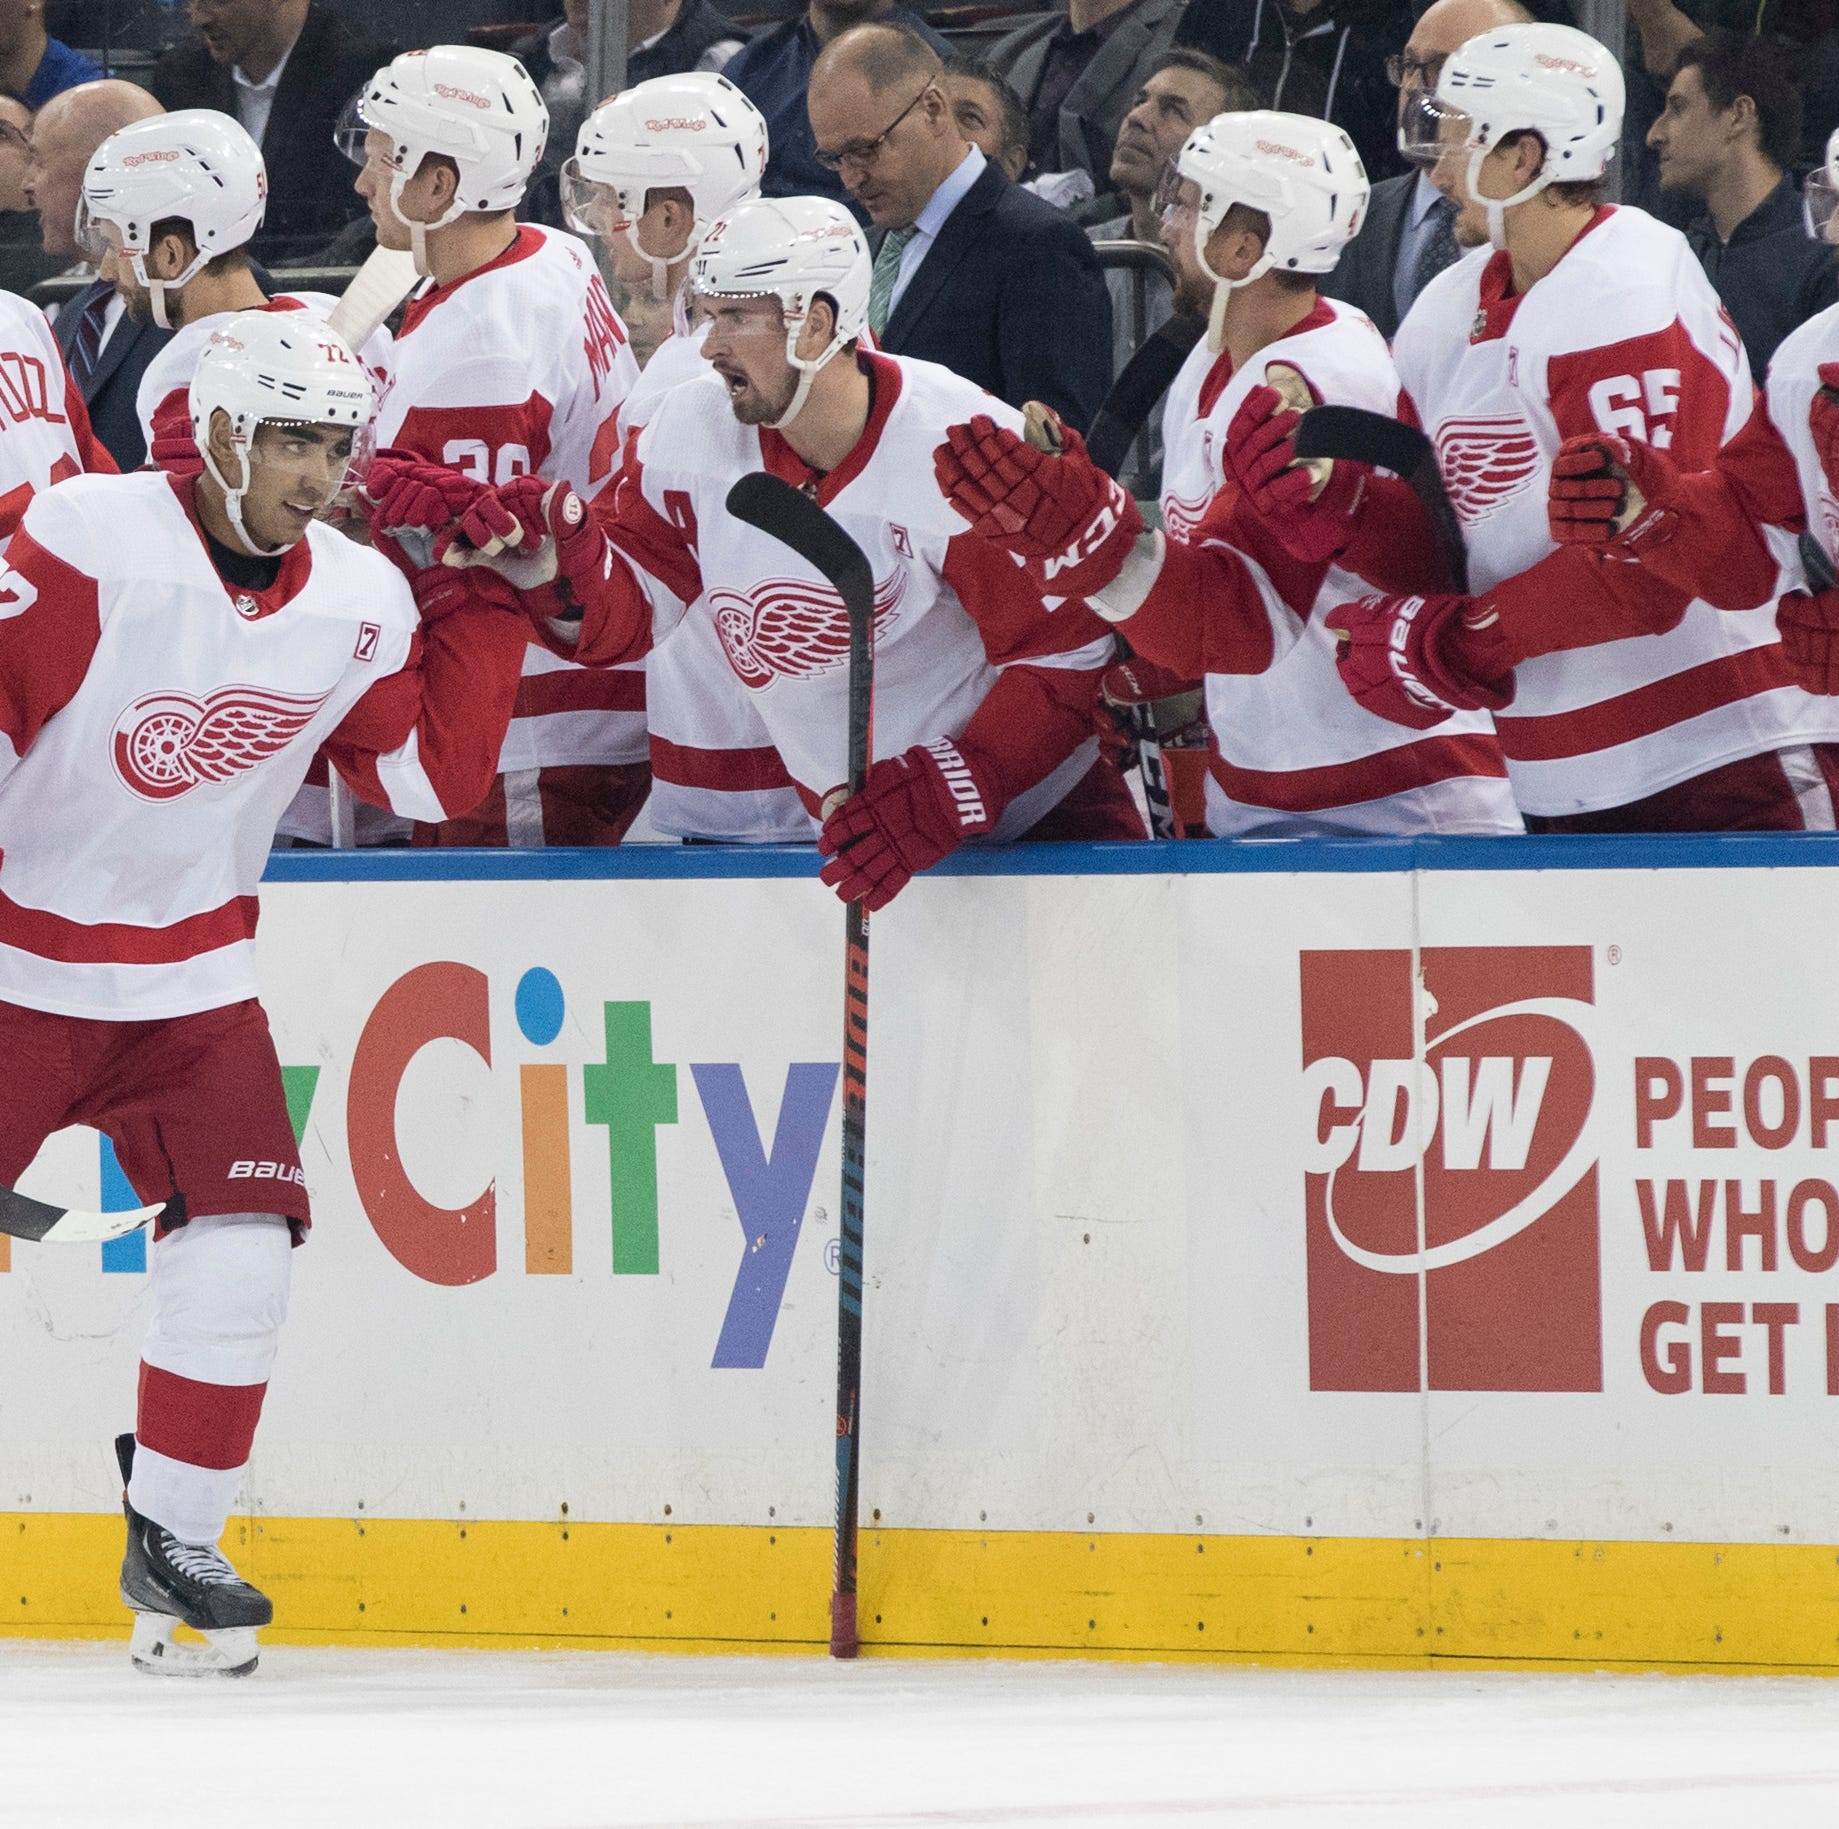 No tanks: Athanasiou scores twice, Red Wings hold on to beat Rangers, 3-2